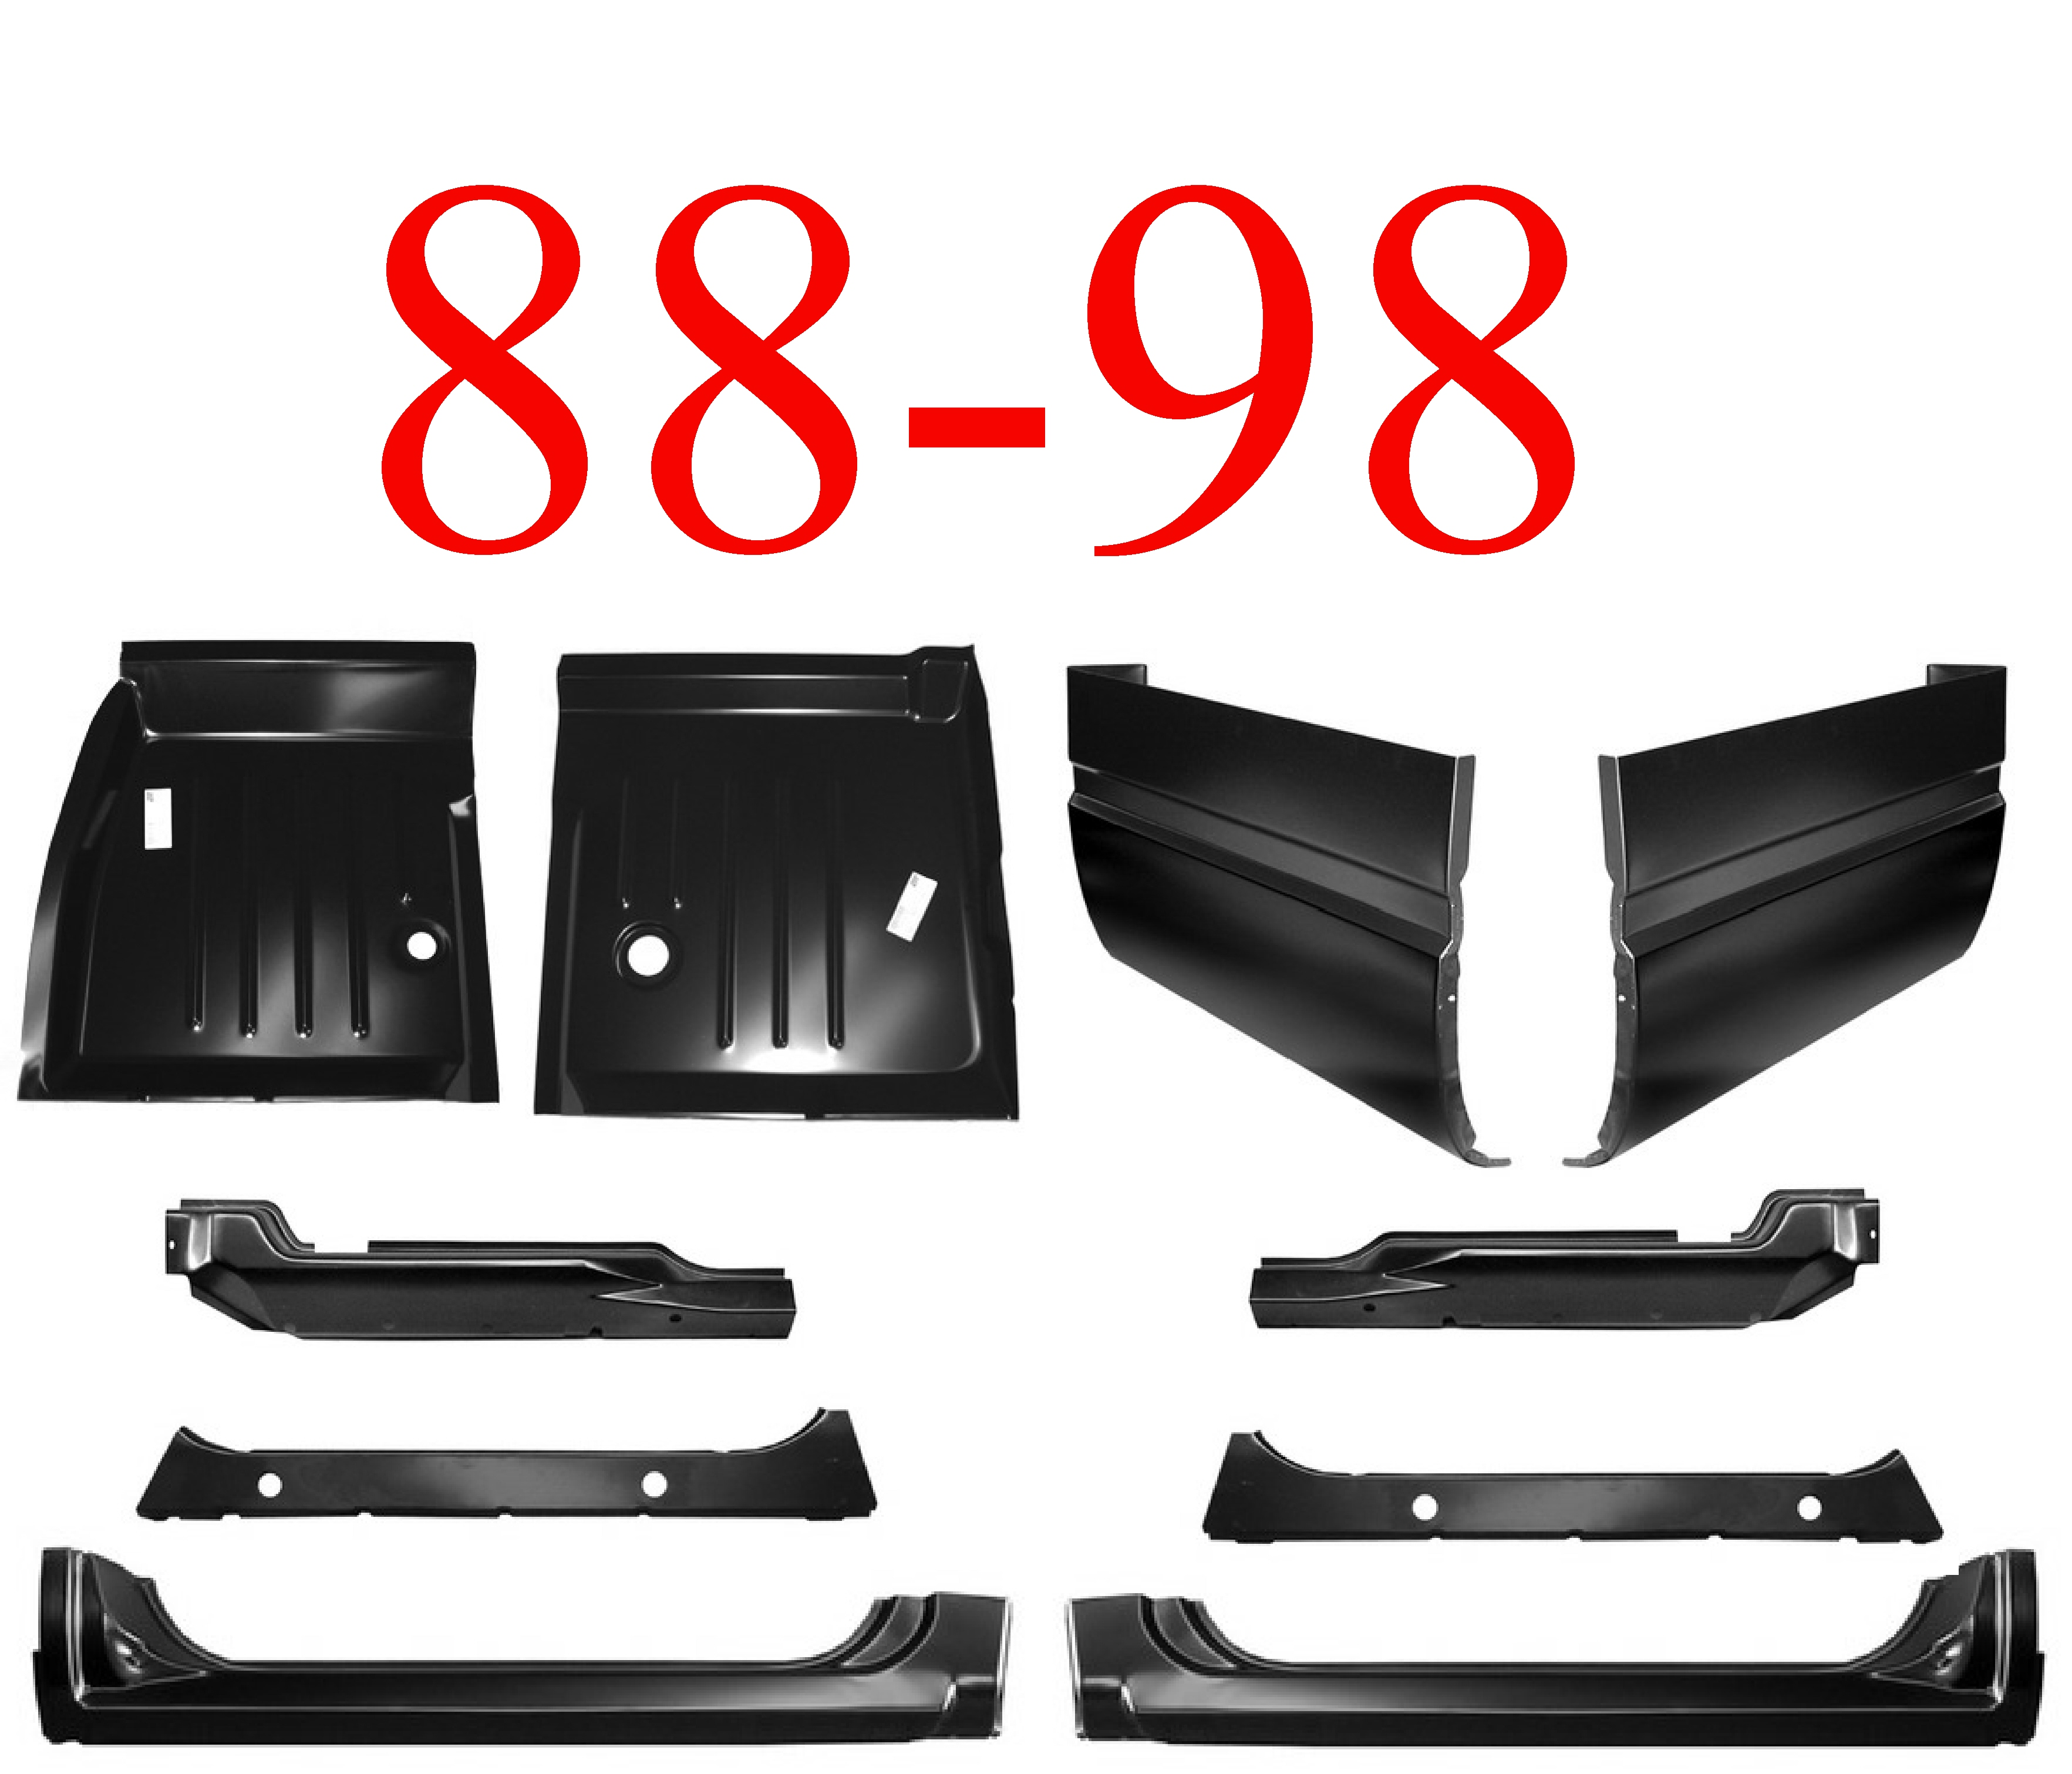 88-98 10Pc Extended Cab Corner, Rocker & Floor Kit